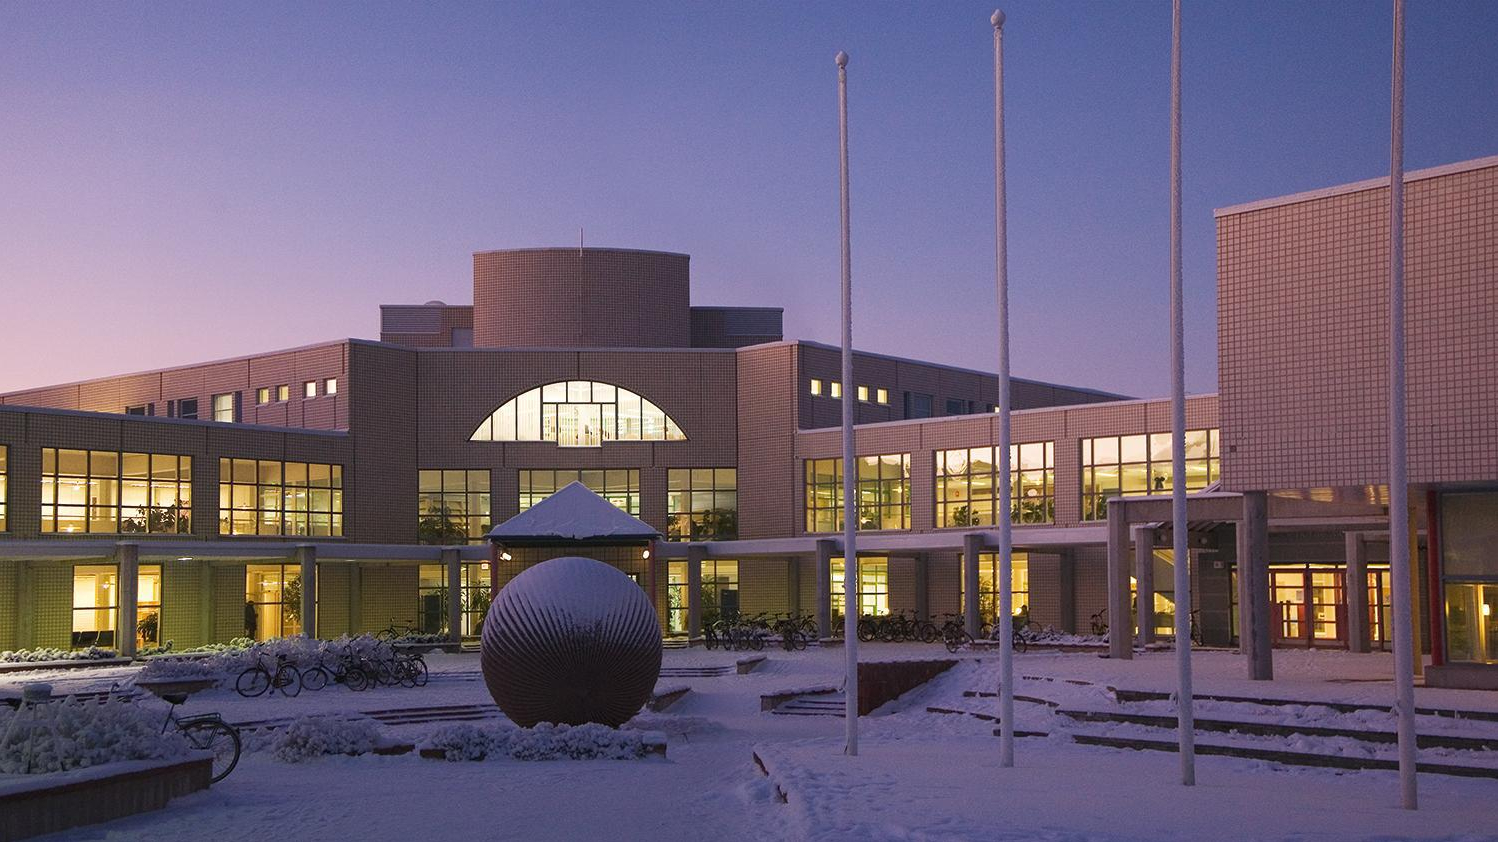 Postdoc in molecular cell biology and drug discovery at